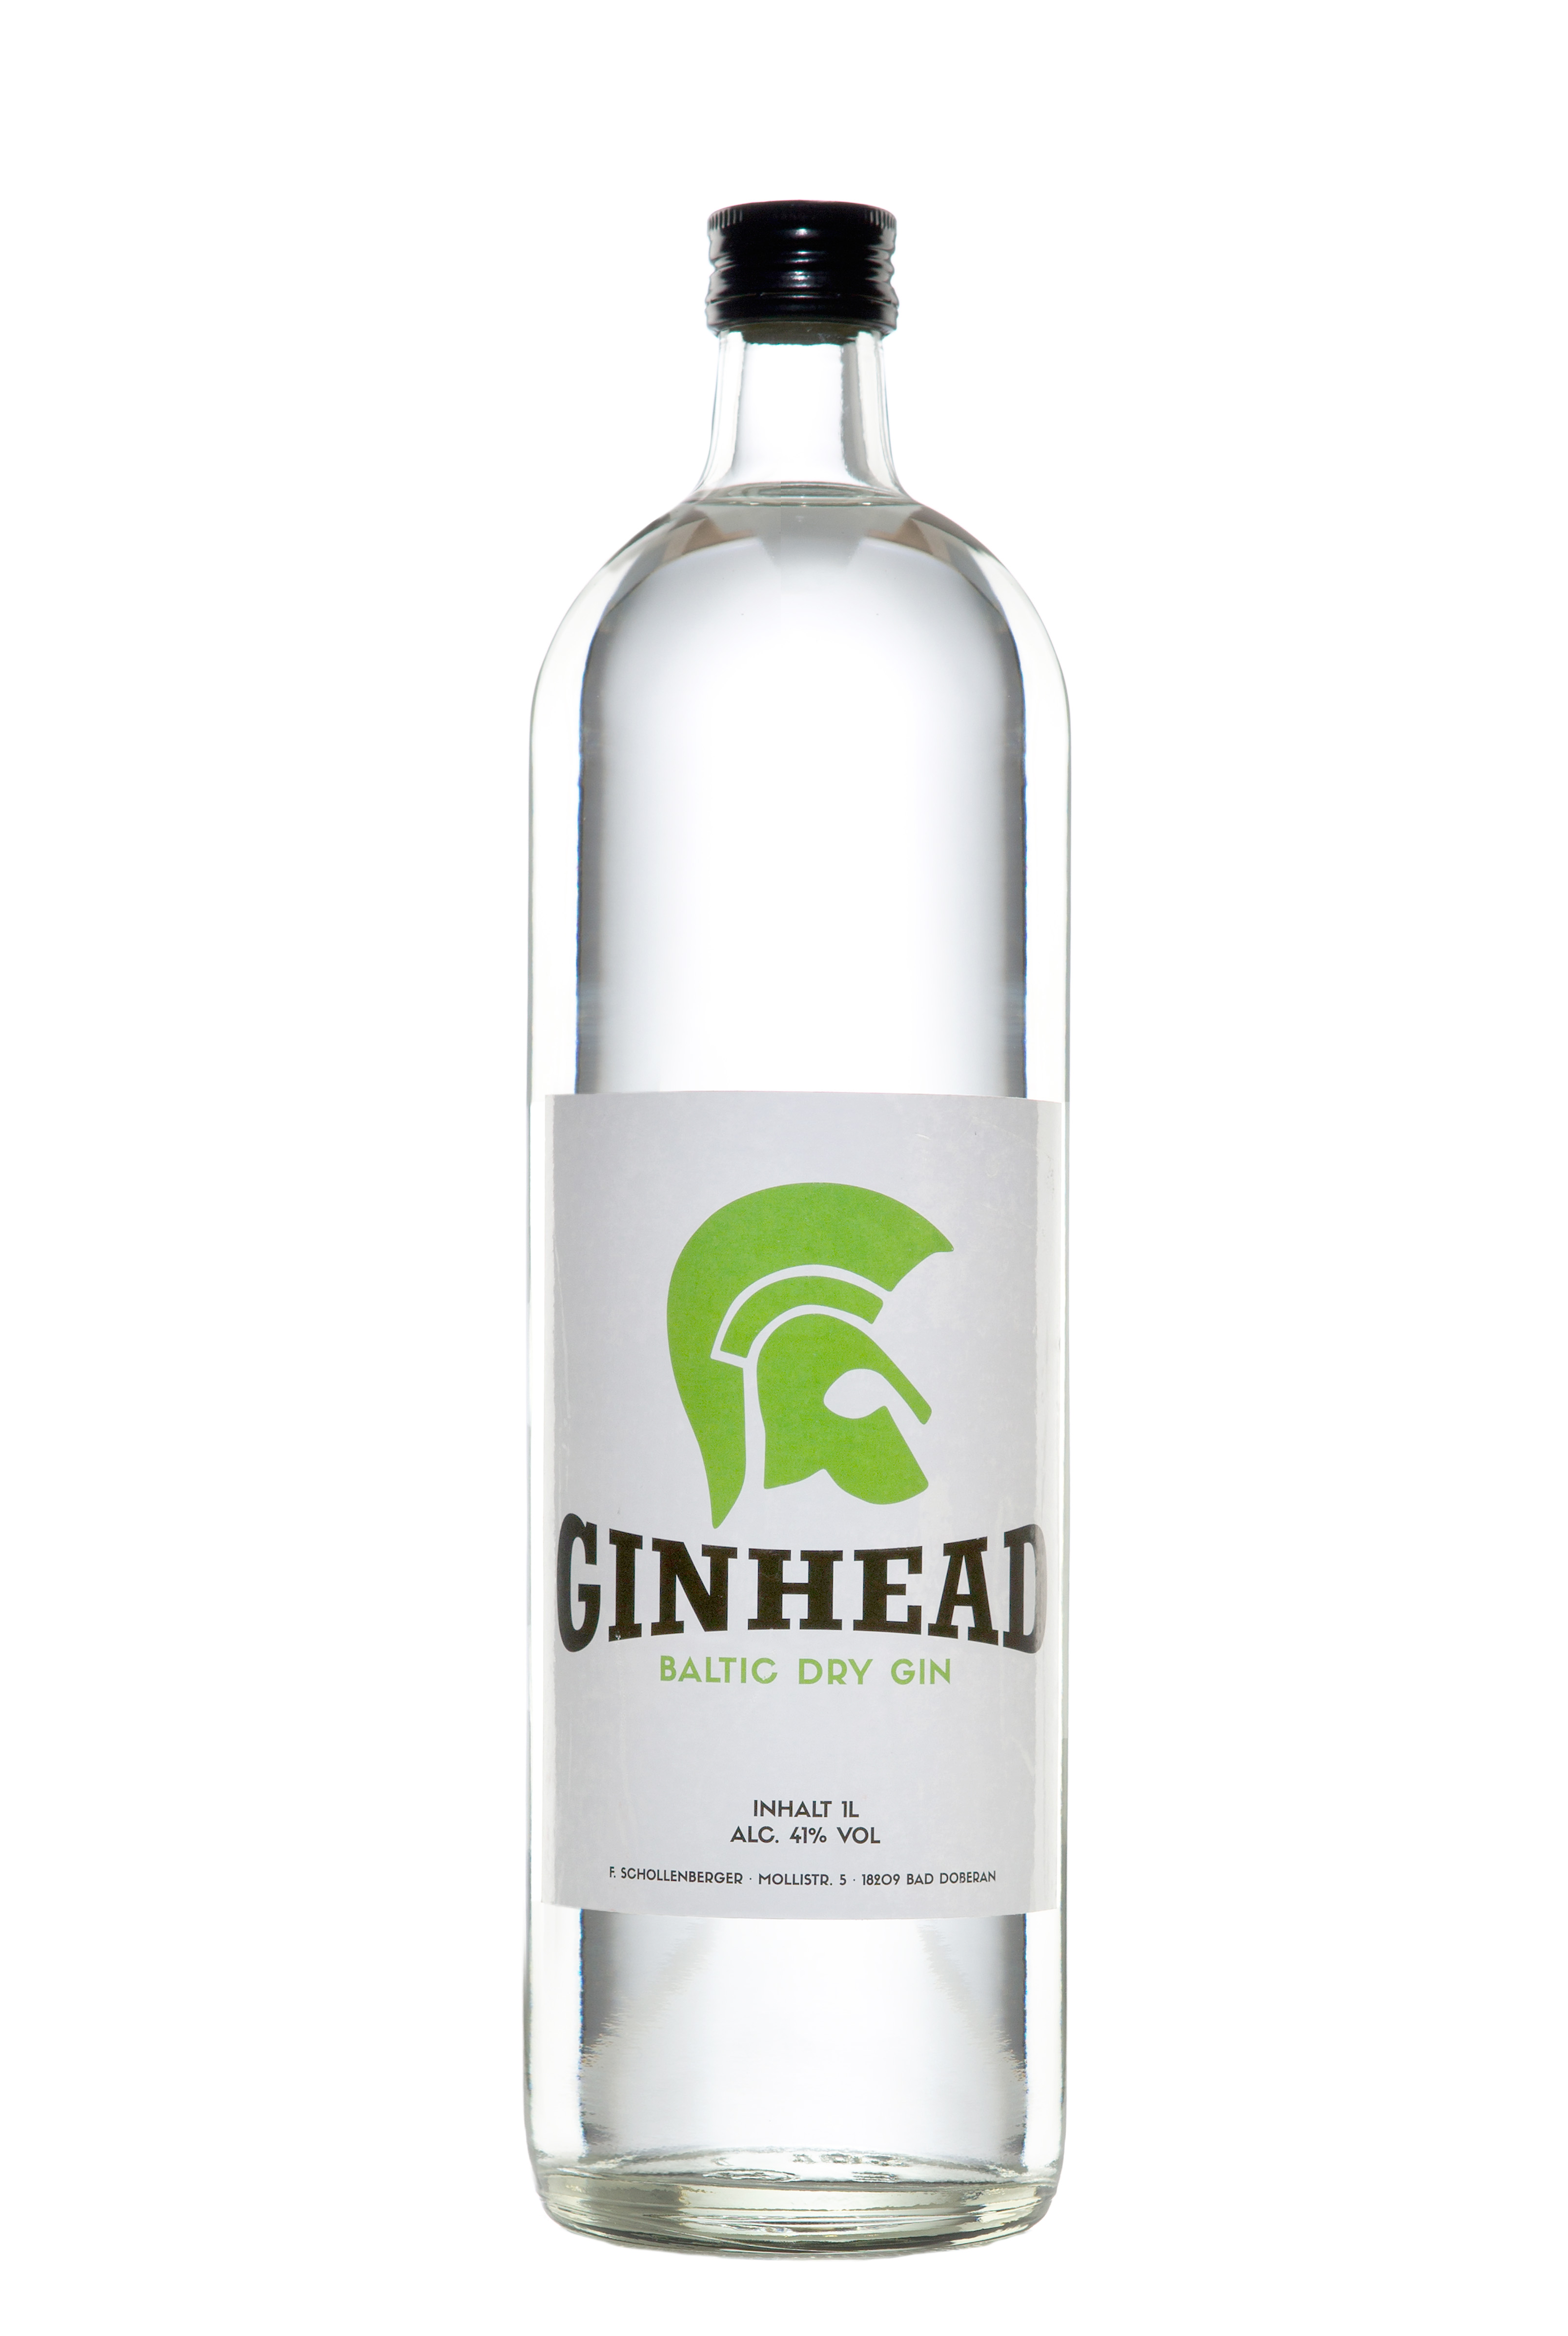 Ginhead Baltic Dry Gin